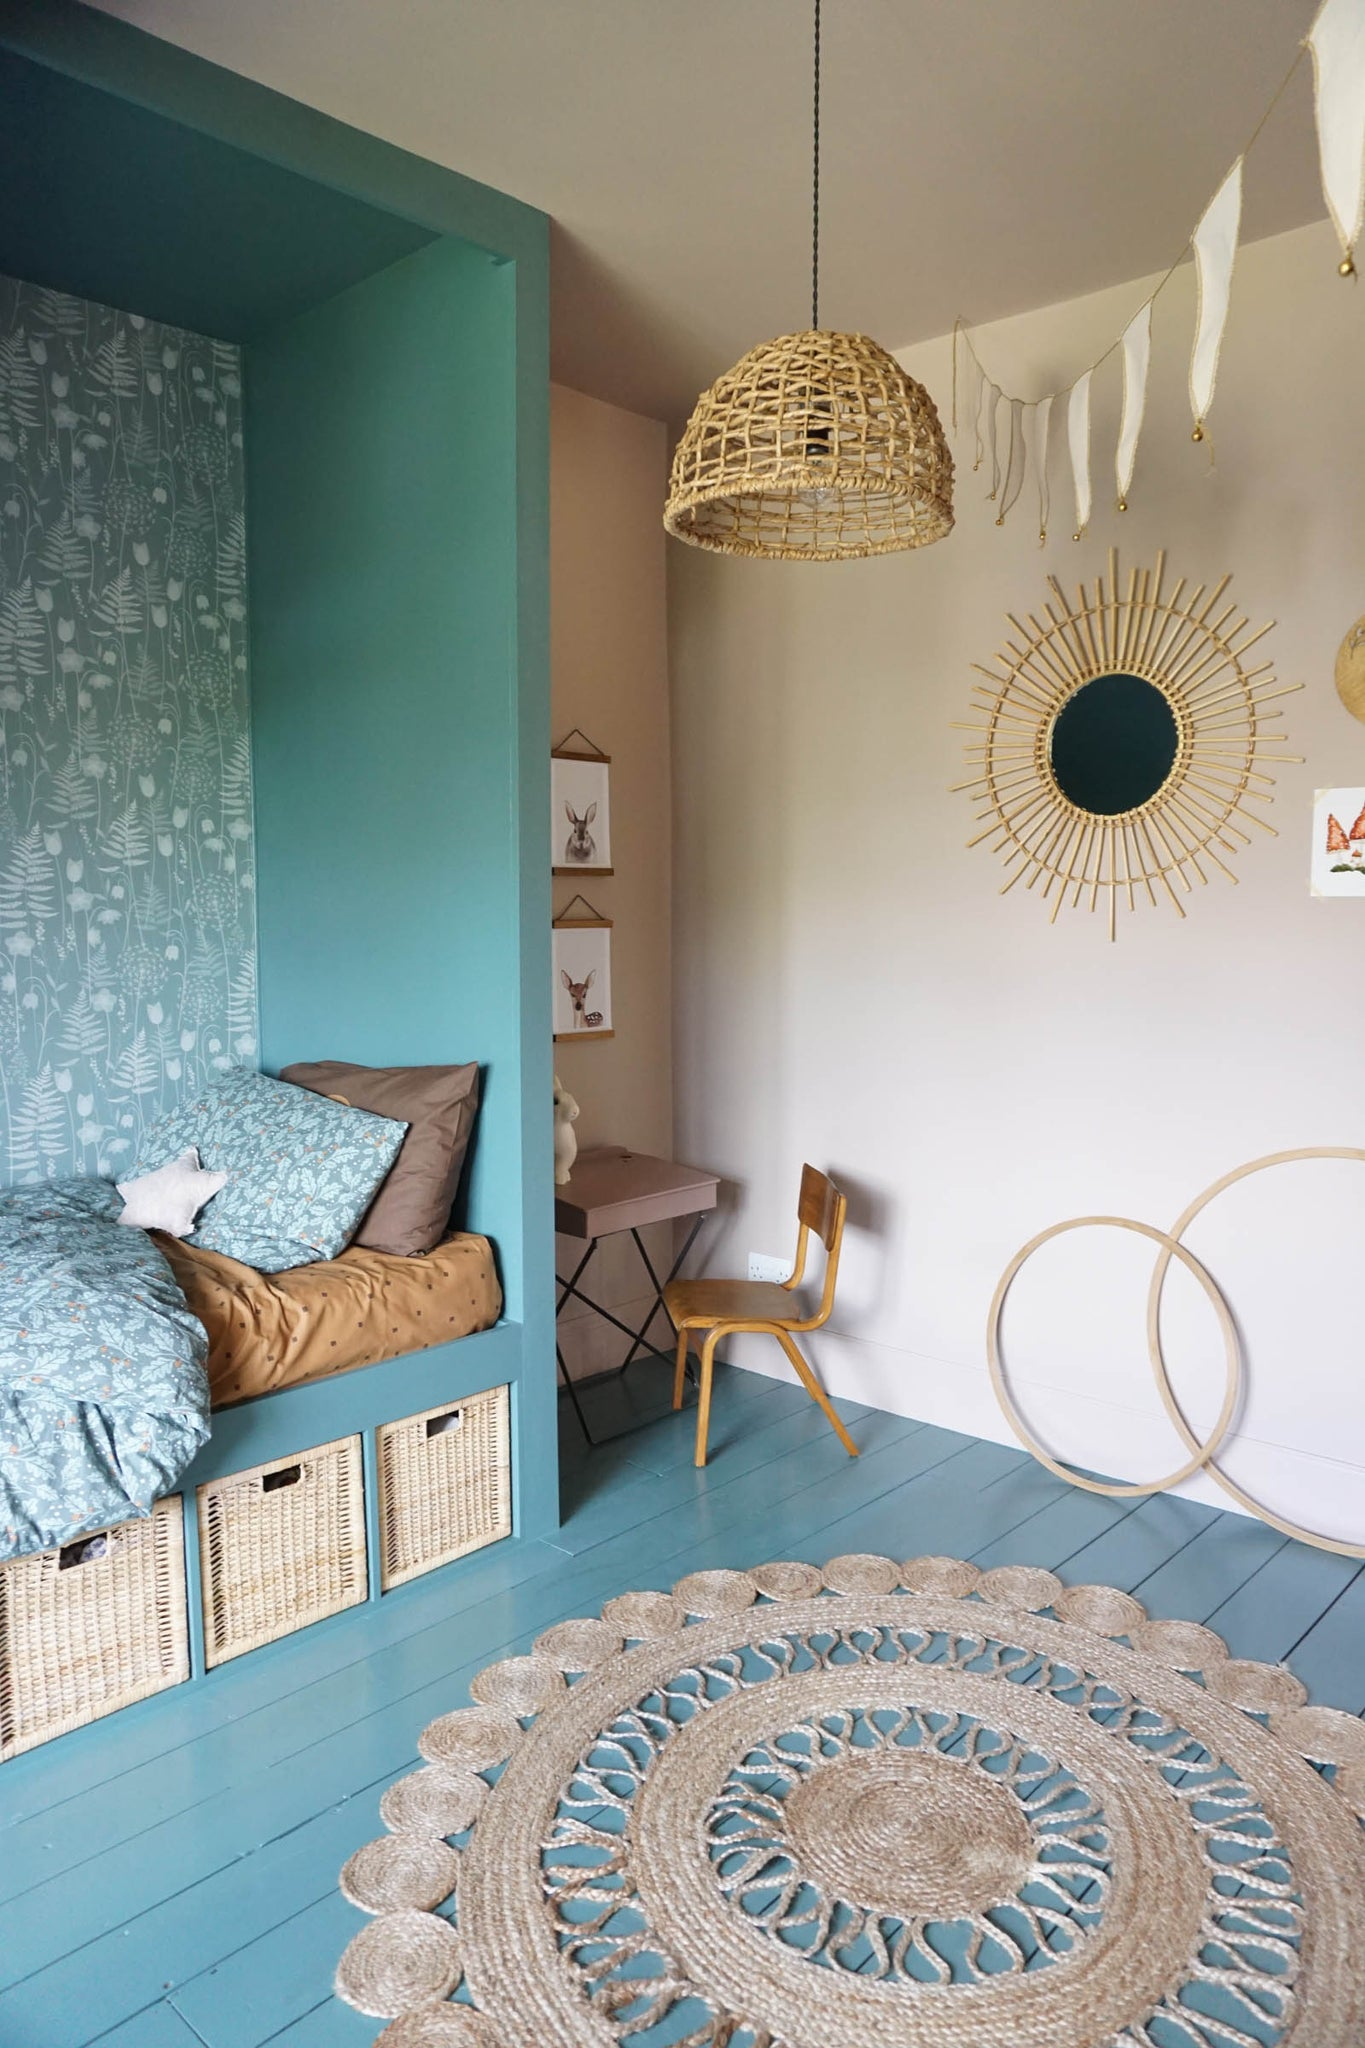 Cloe Gets Creative bedroom makeover with Hannah Nunn Charlottes Garden wallpaper